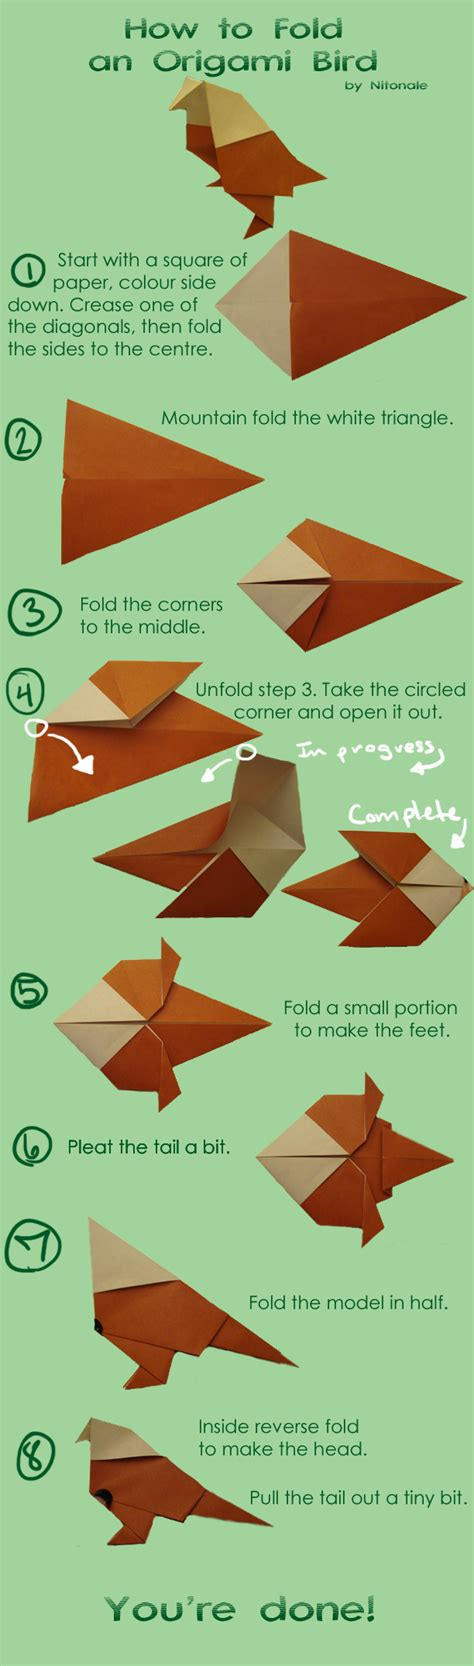 How Do You Make Origami - how to make a bird junglekey co uk image